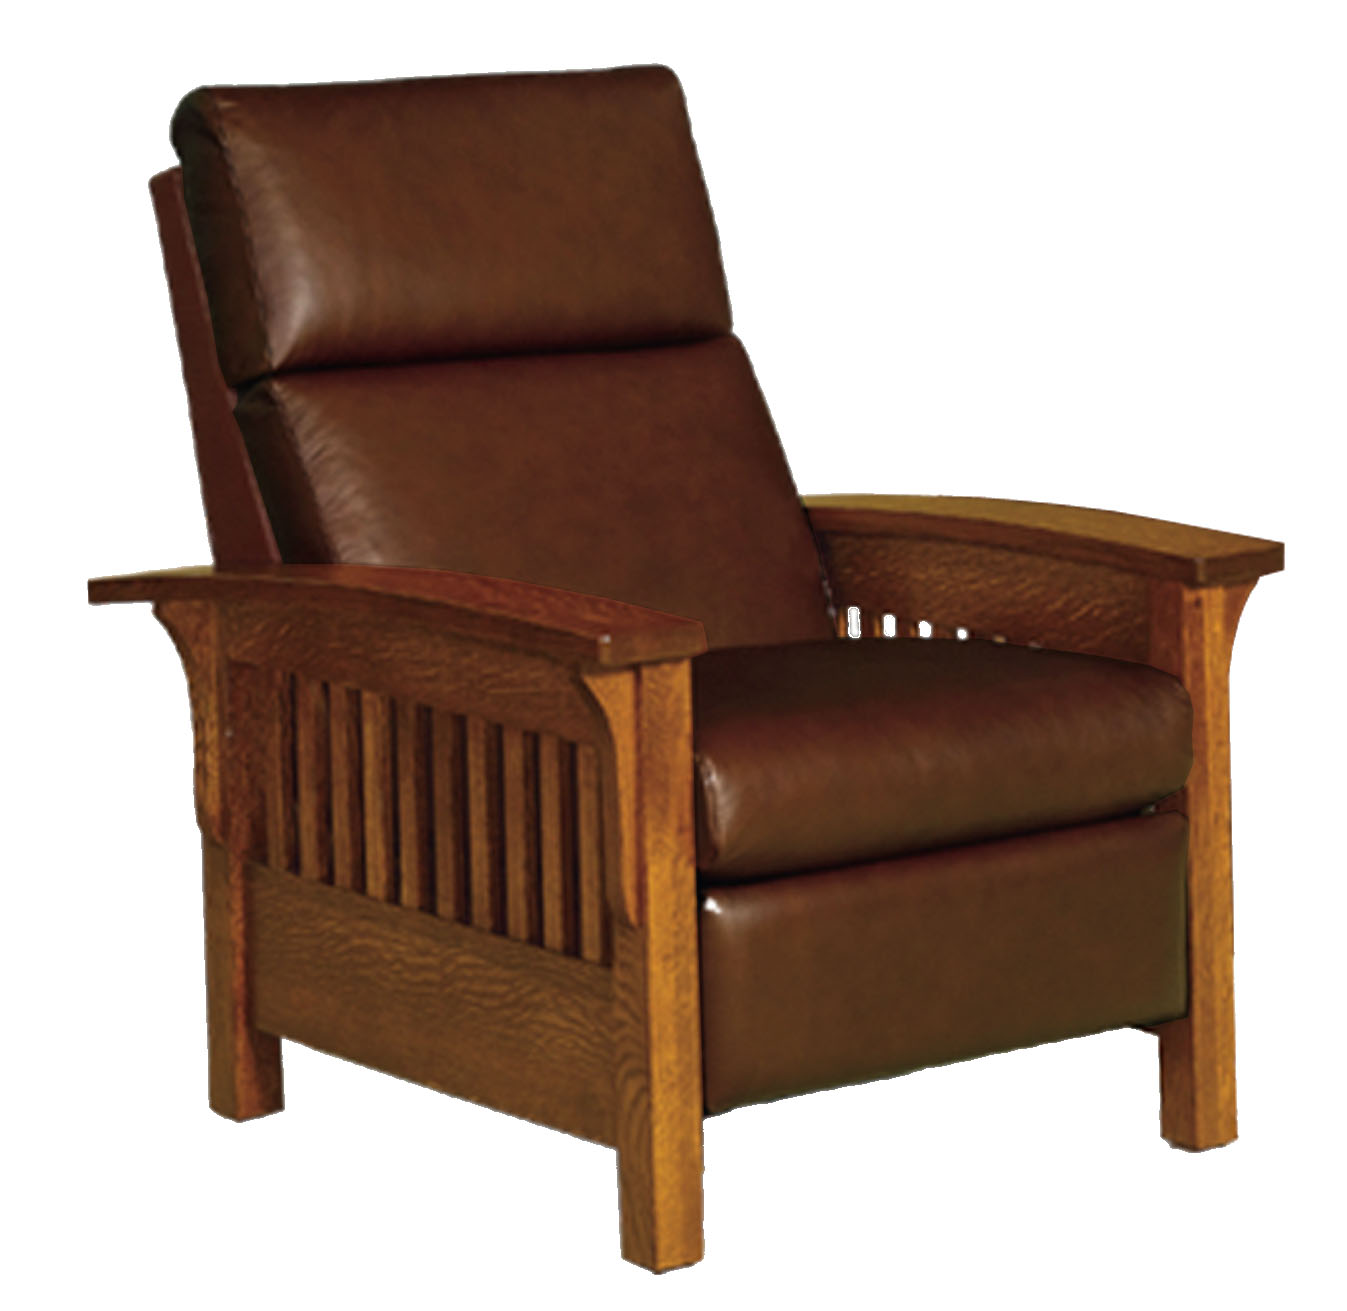 Bon Amish Made   Recliner Has 3 Positions: Upright, Angled Back, Almost Flat.  Availble In Oak, Quarter Sawn Oak, Walnut And Cherry. Fabric Or Leather.